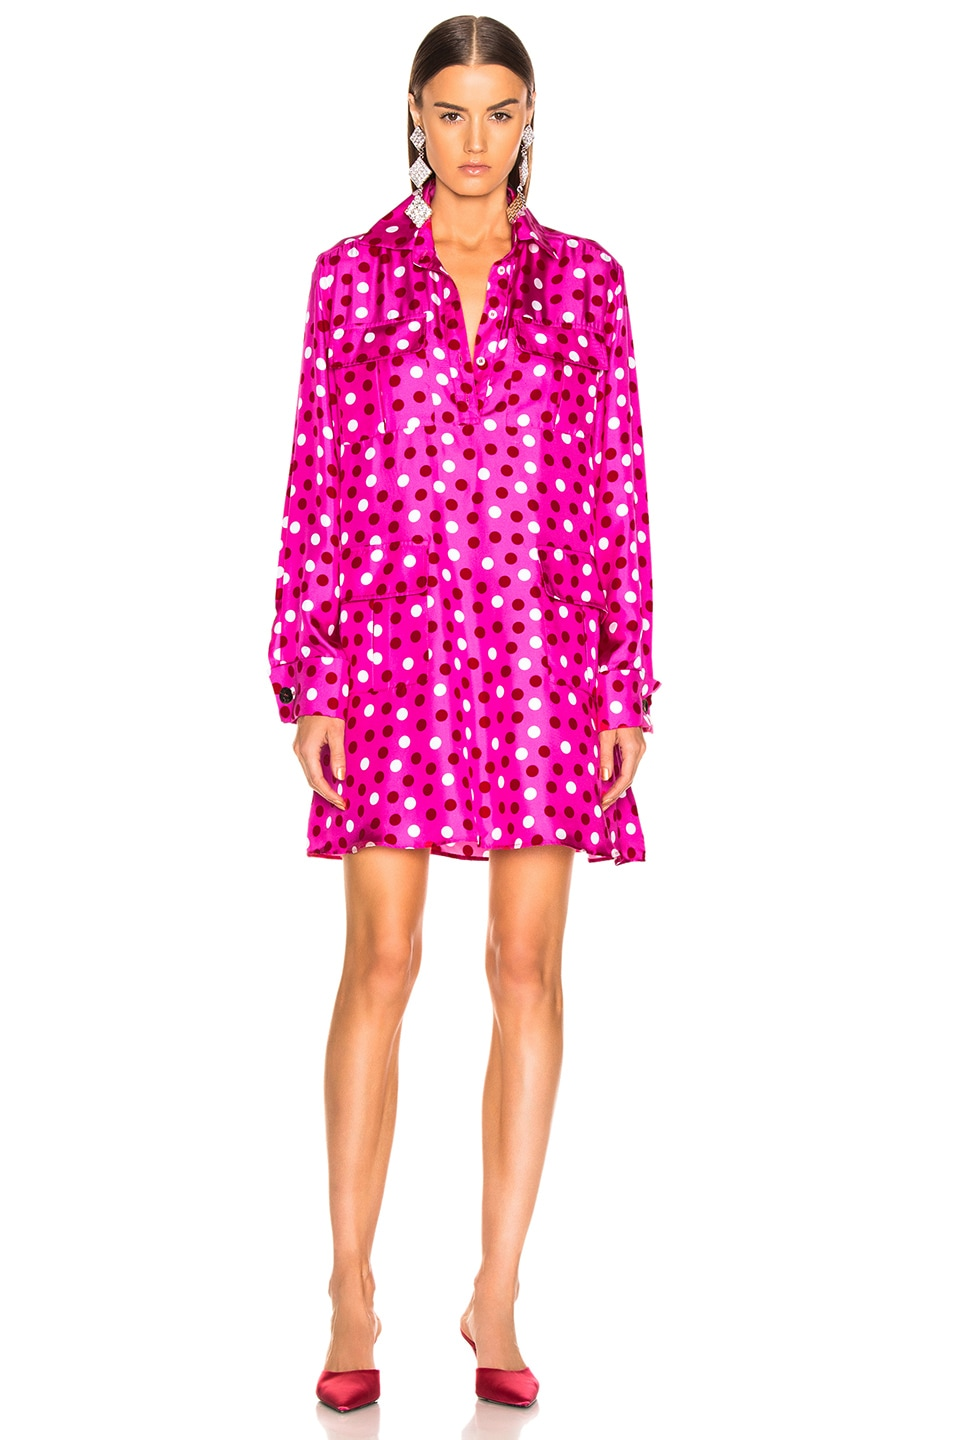 Image 2 of Maggie Marilyn Heat Of The Moment Dress in Pink, White & Red Polka Dot